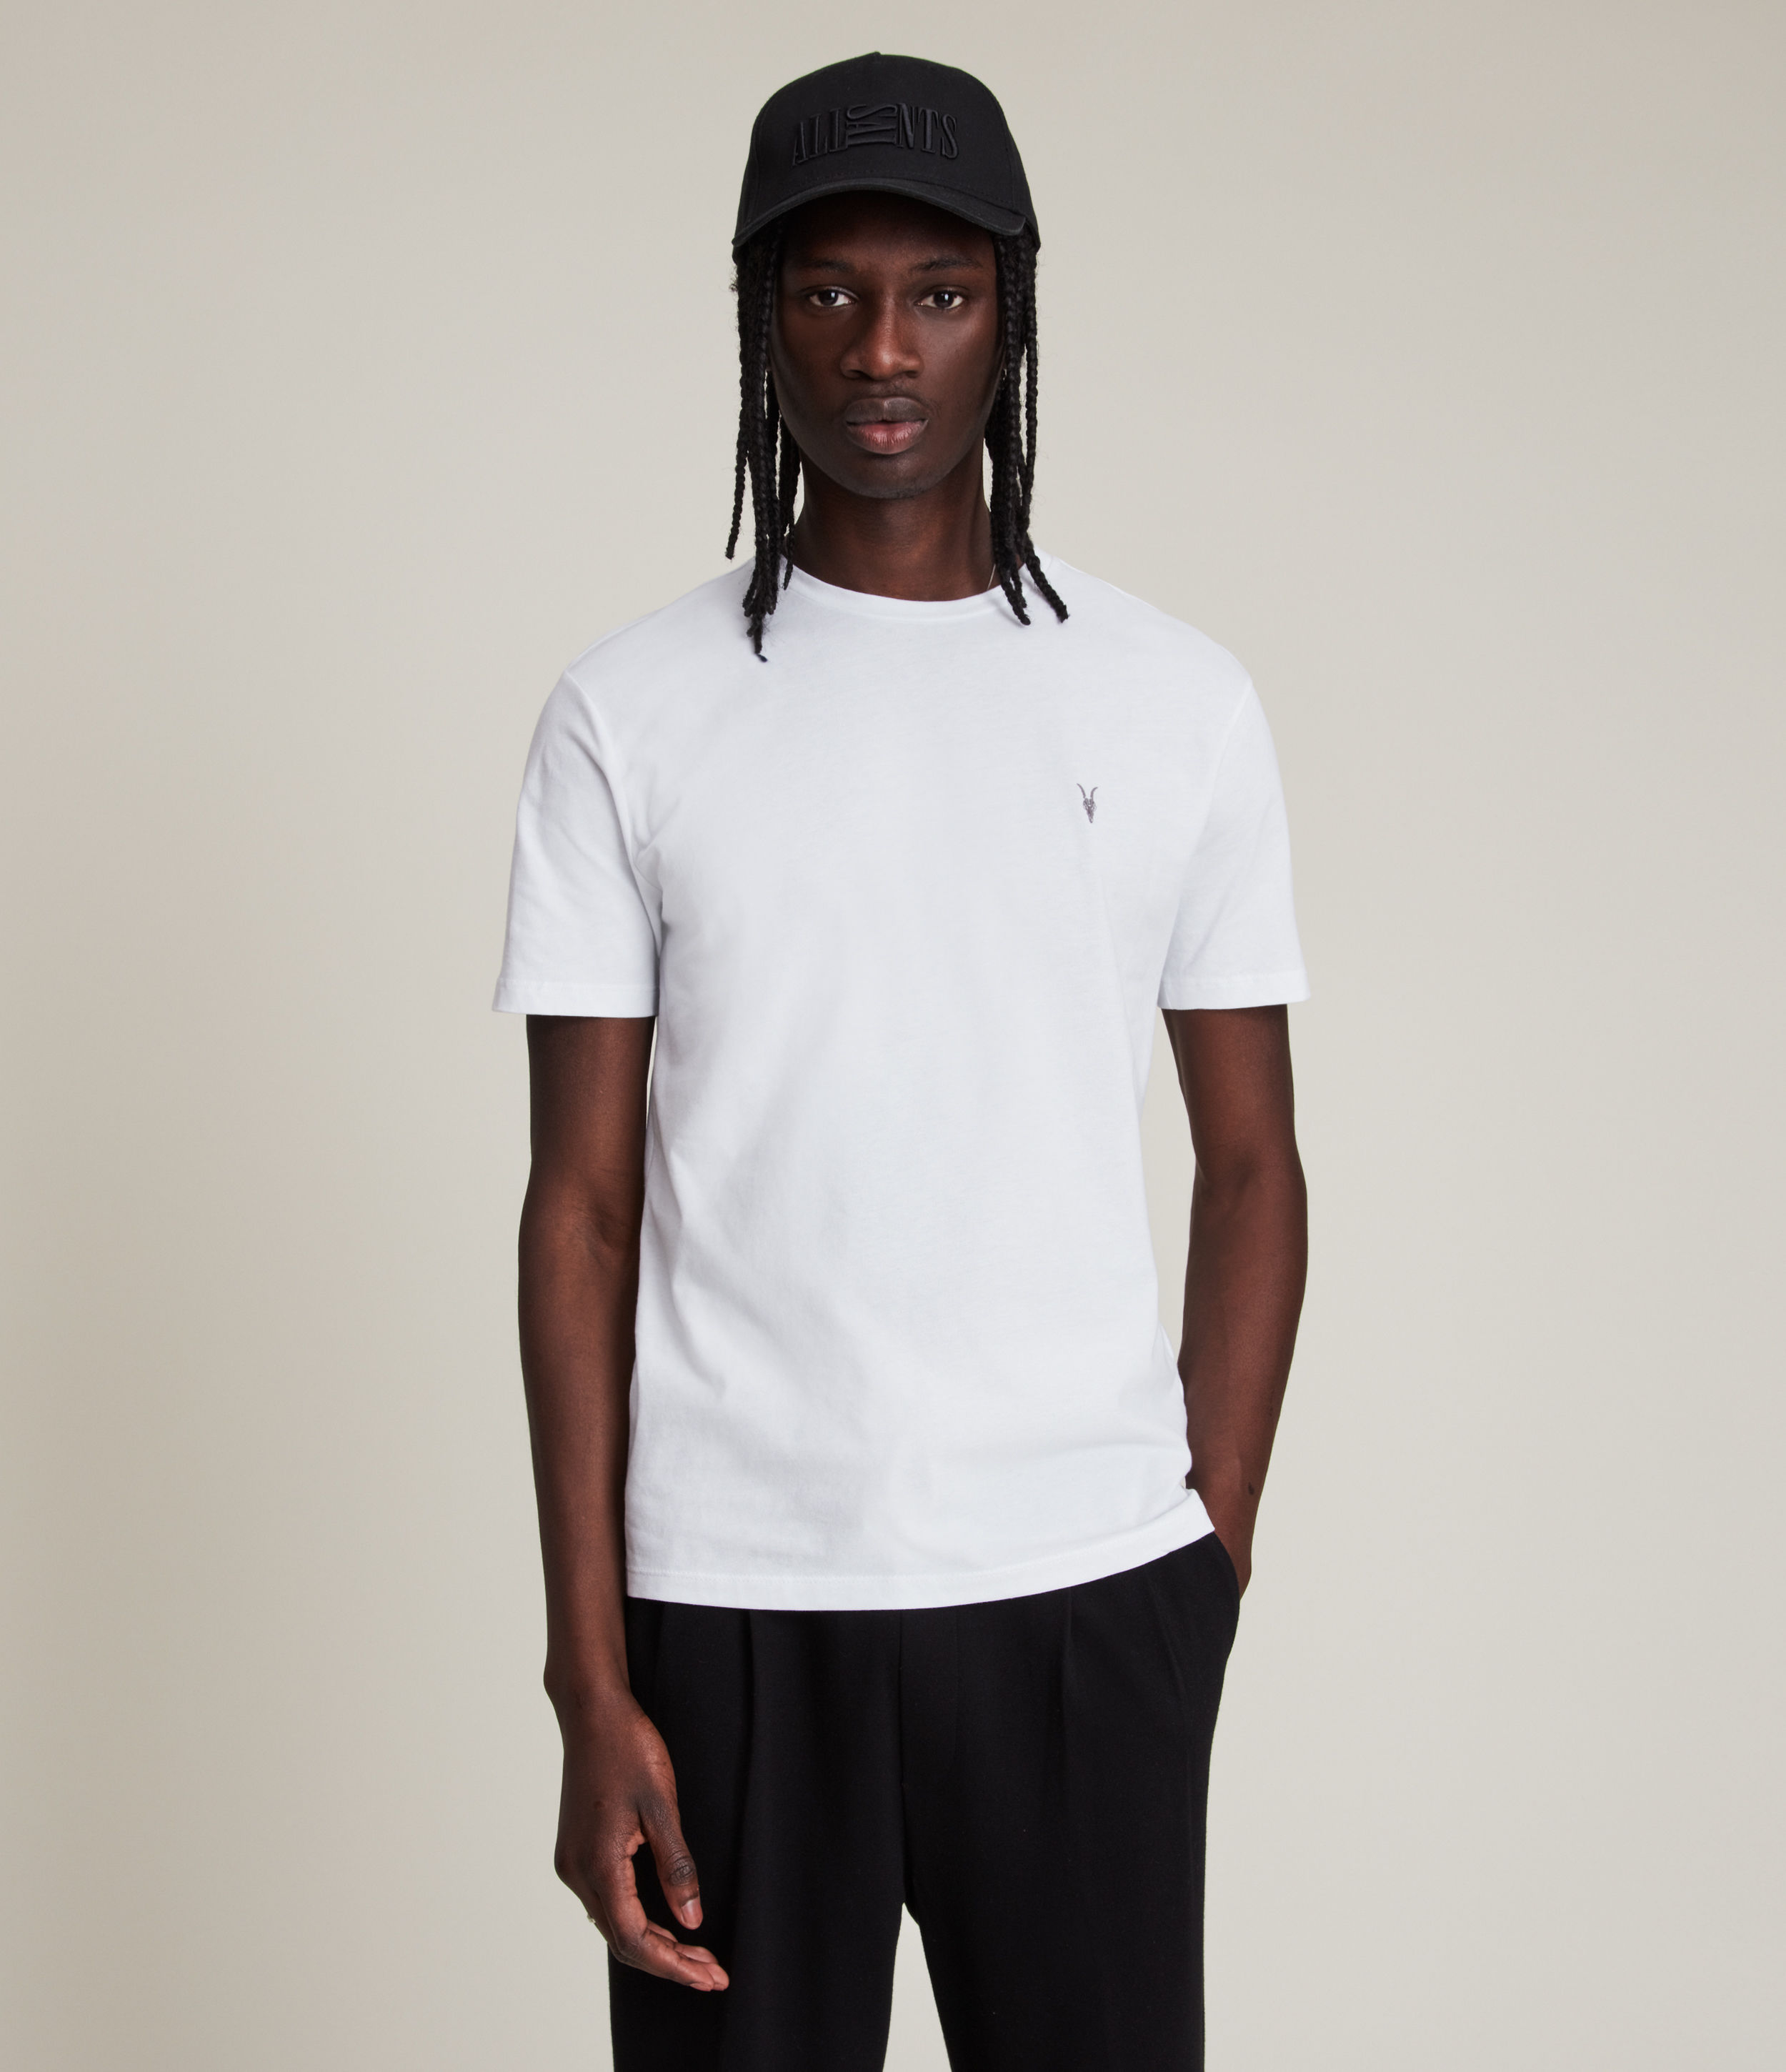 AllSaints Men's Cotton Regular Fit Brace Tonic Short Sleeve Crew T-Shirt, White, Size: M